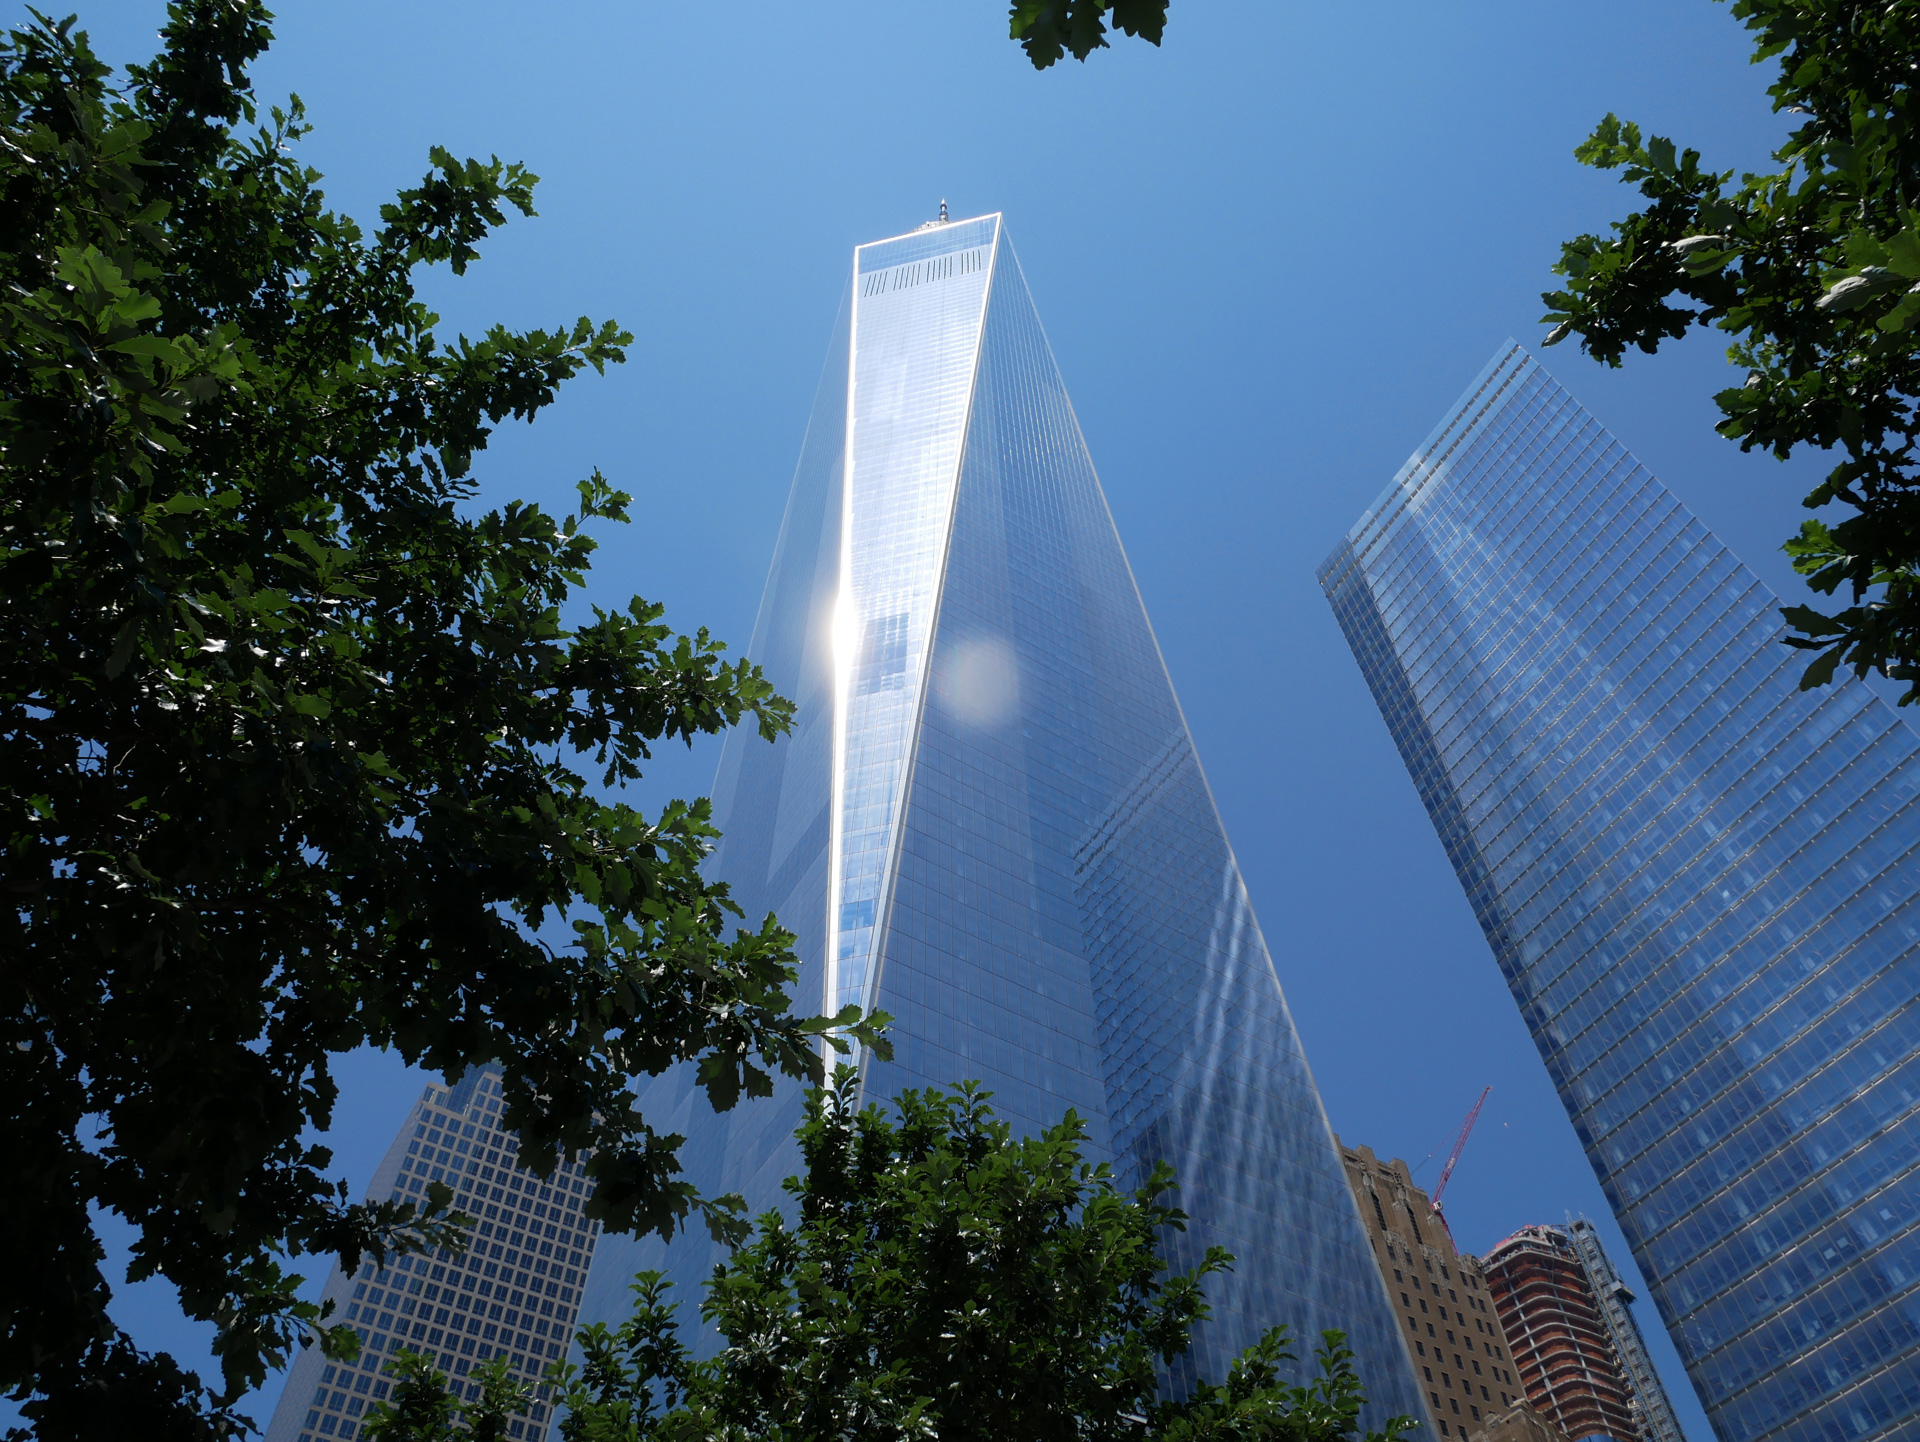 Altura del One World Trade Center